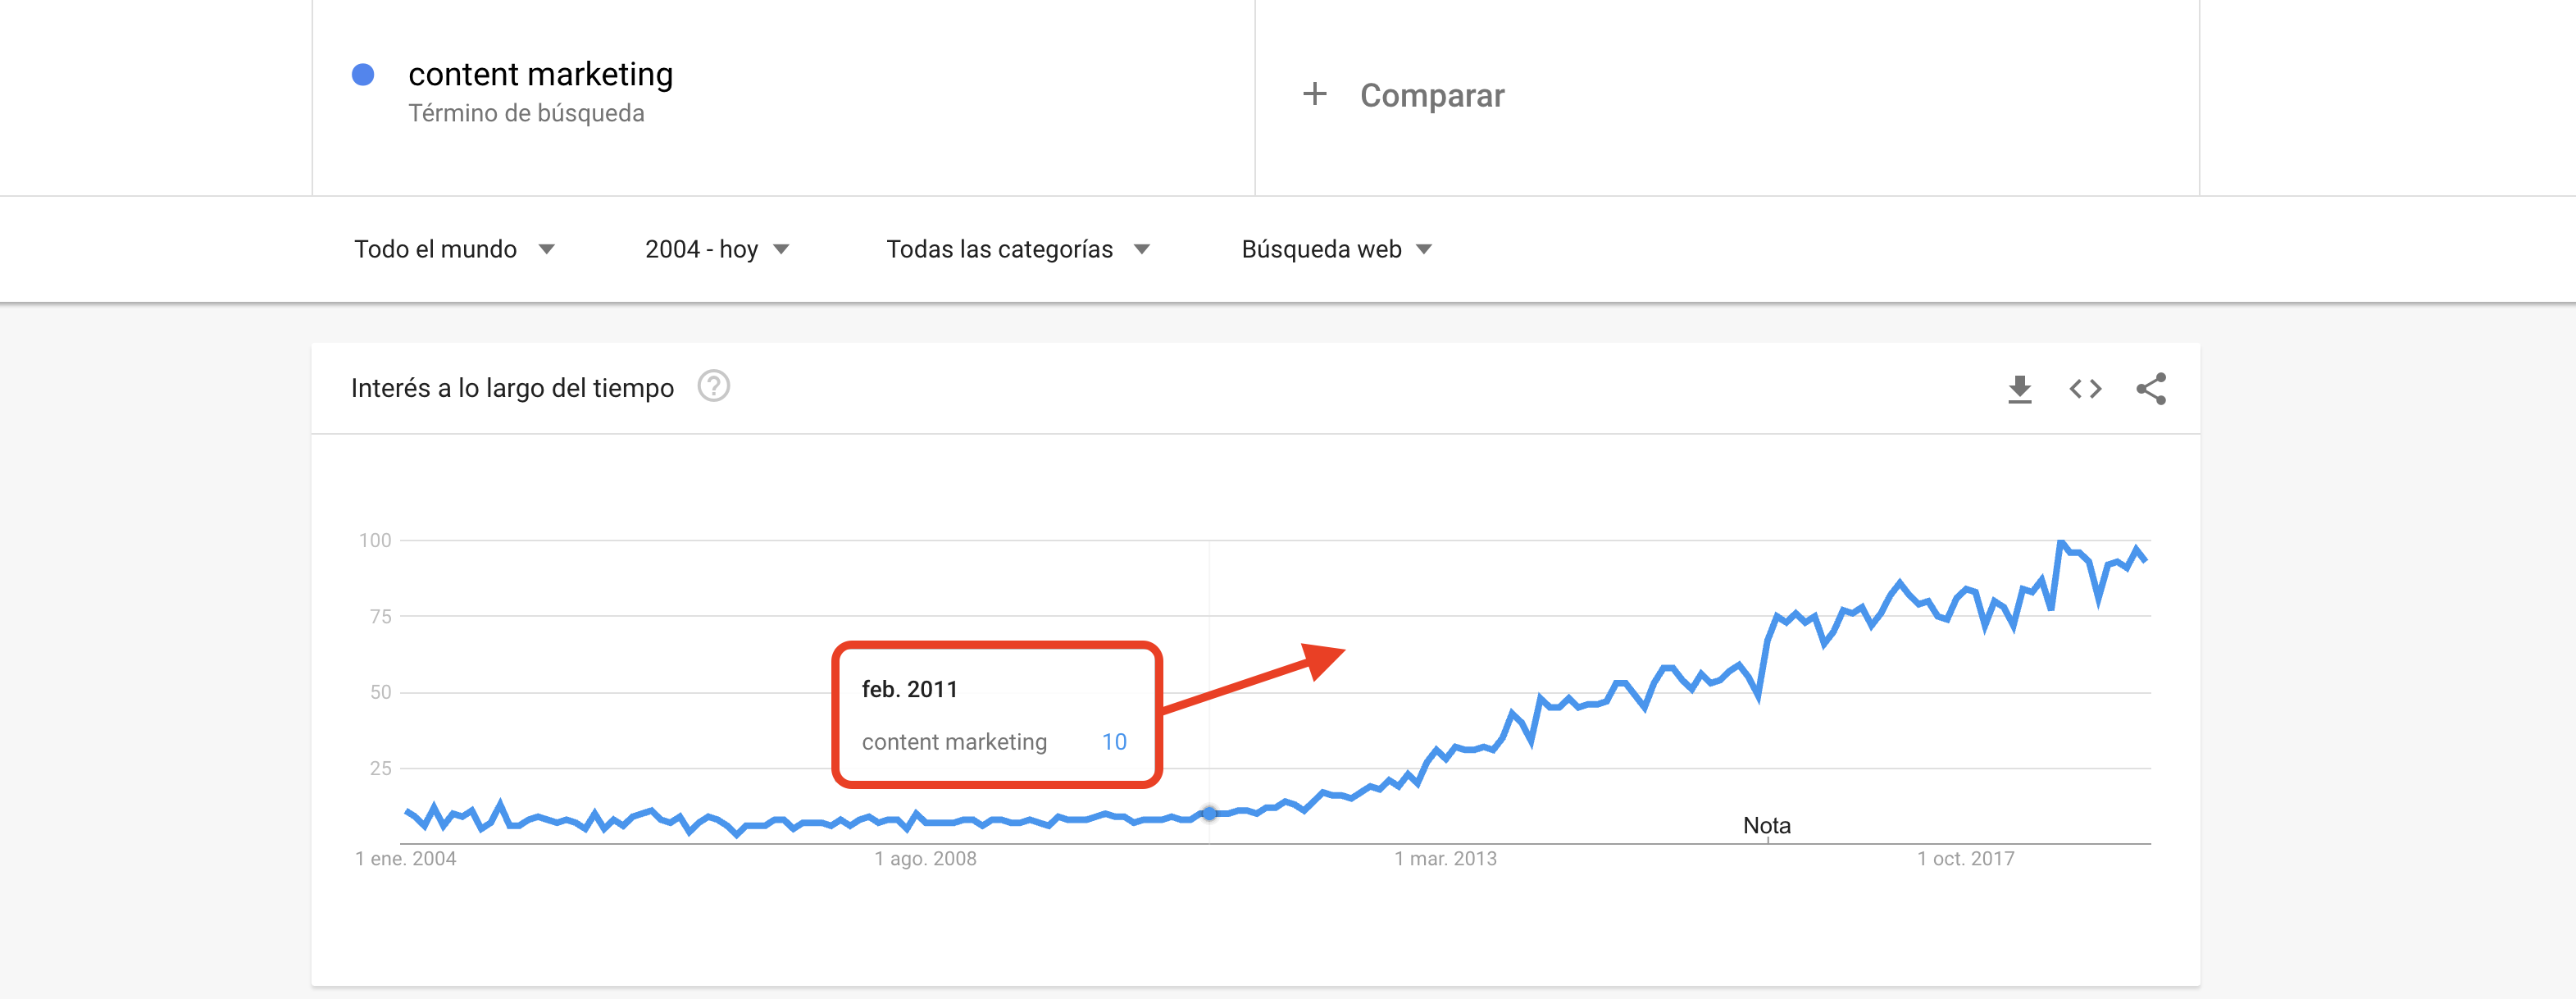 Google Panda - Content marketing en Google Trend